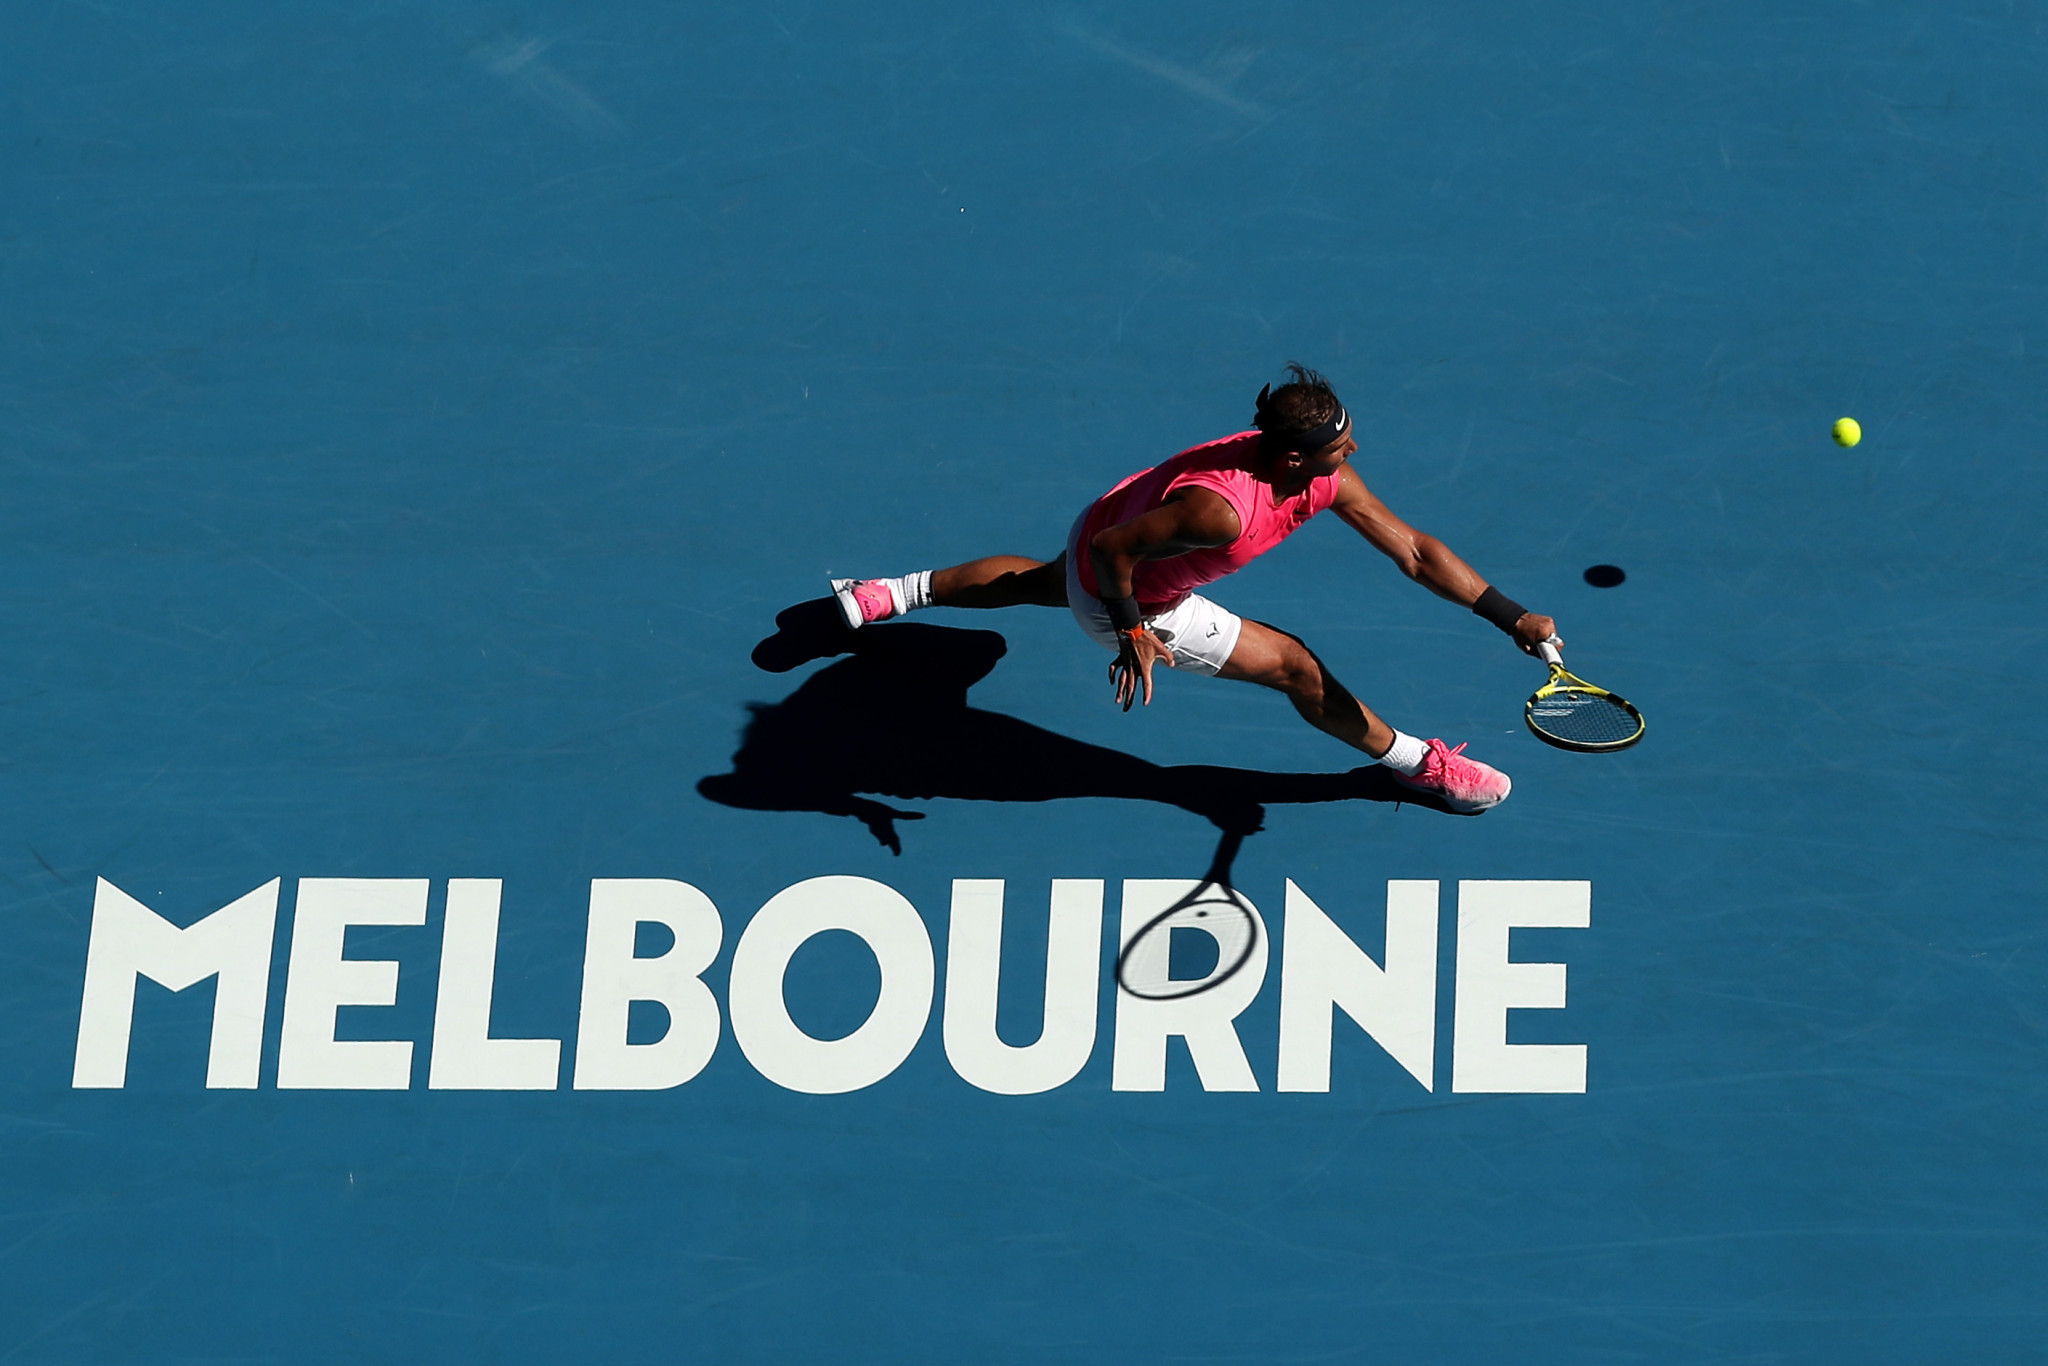 Nadal takes simple route to Australian Open last 16 after Federer roller-coaster